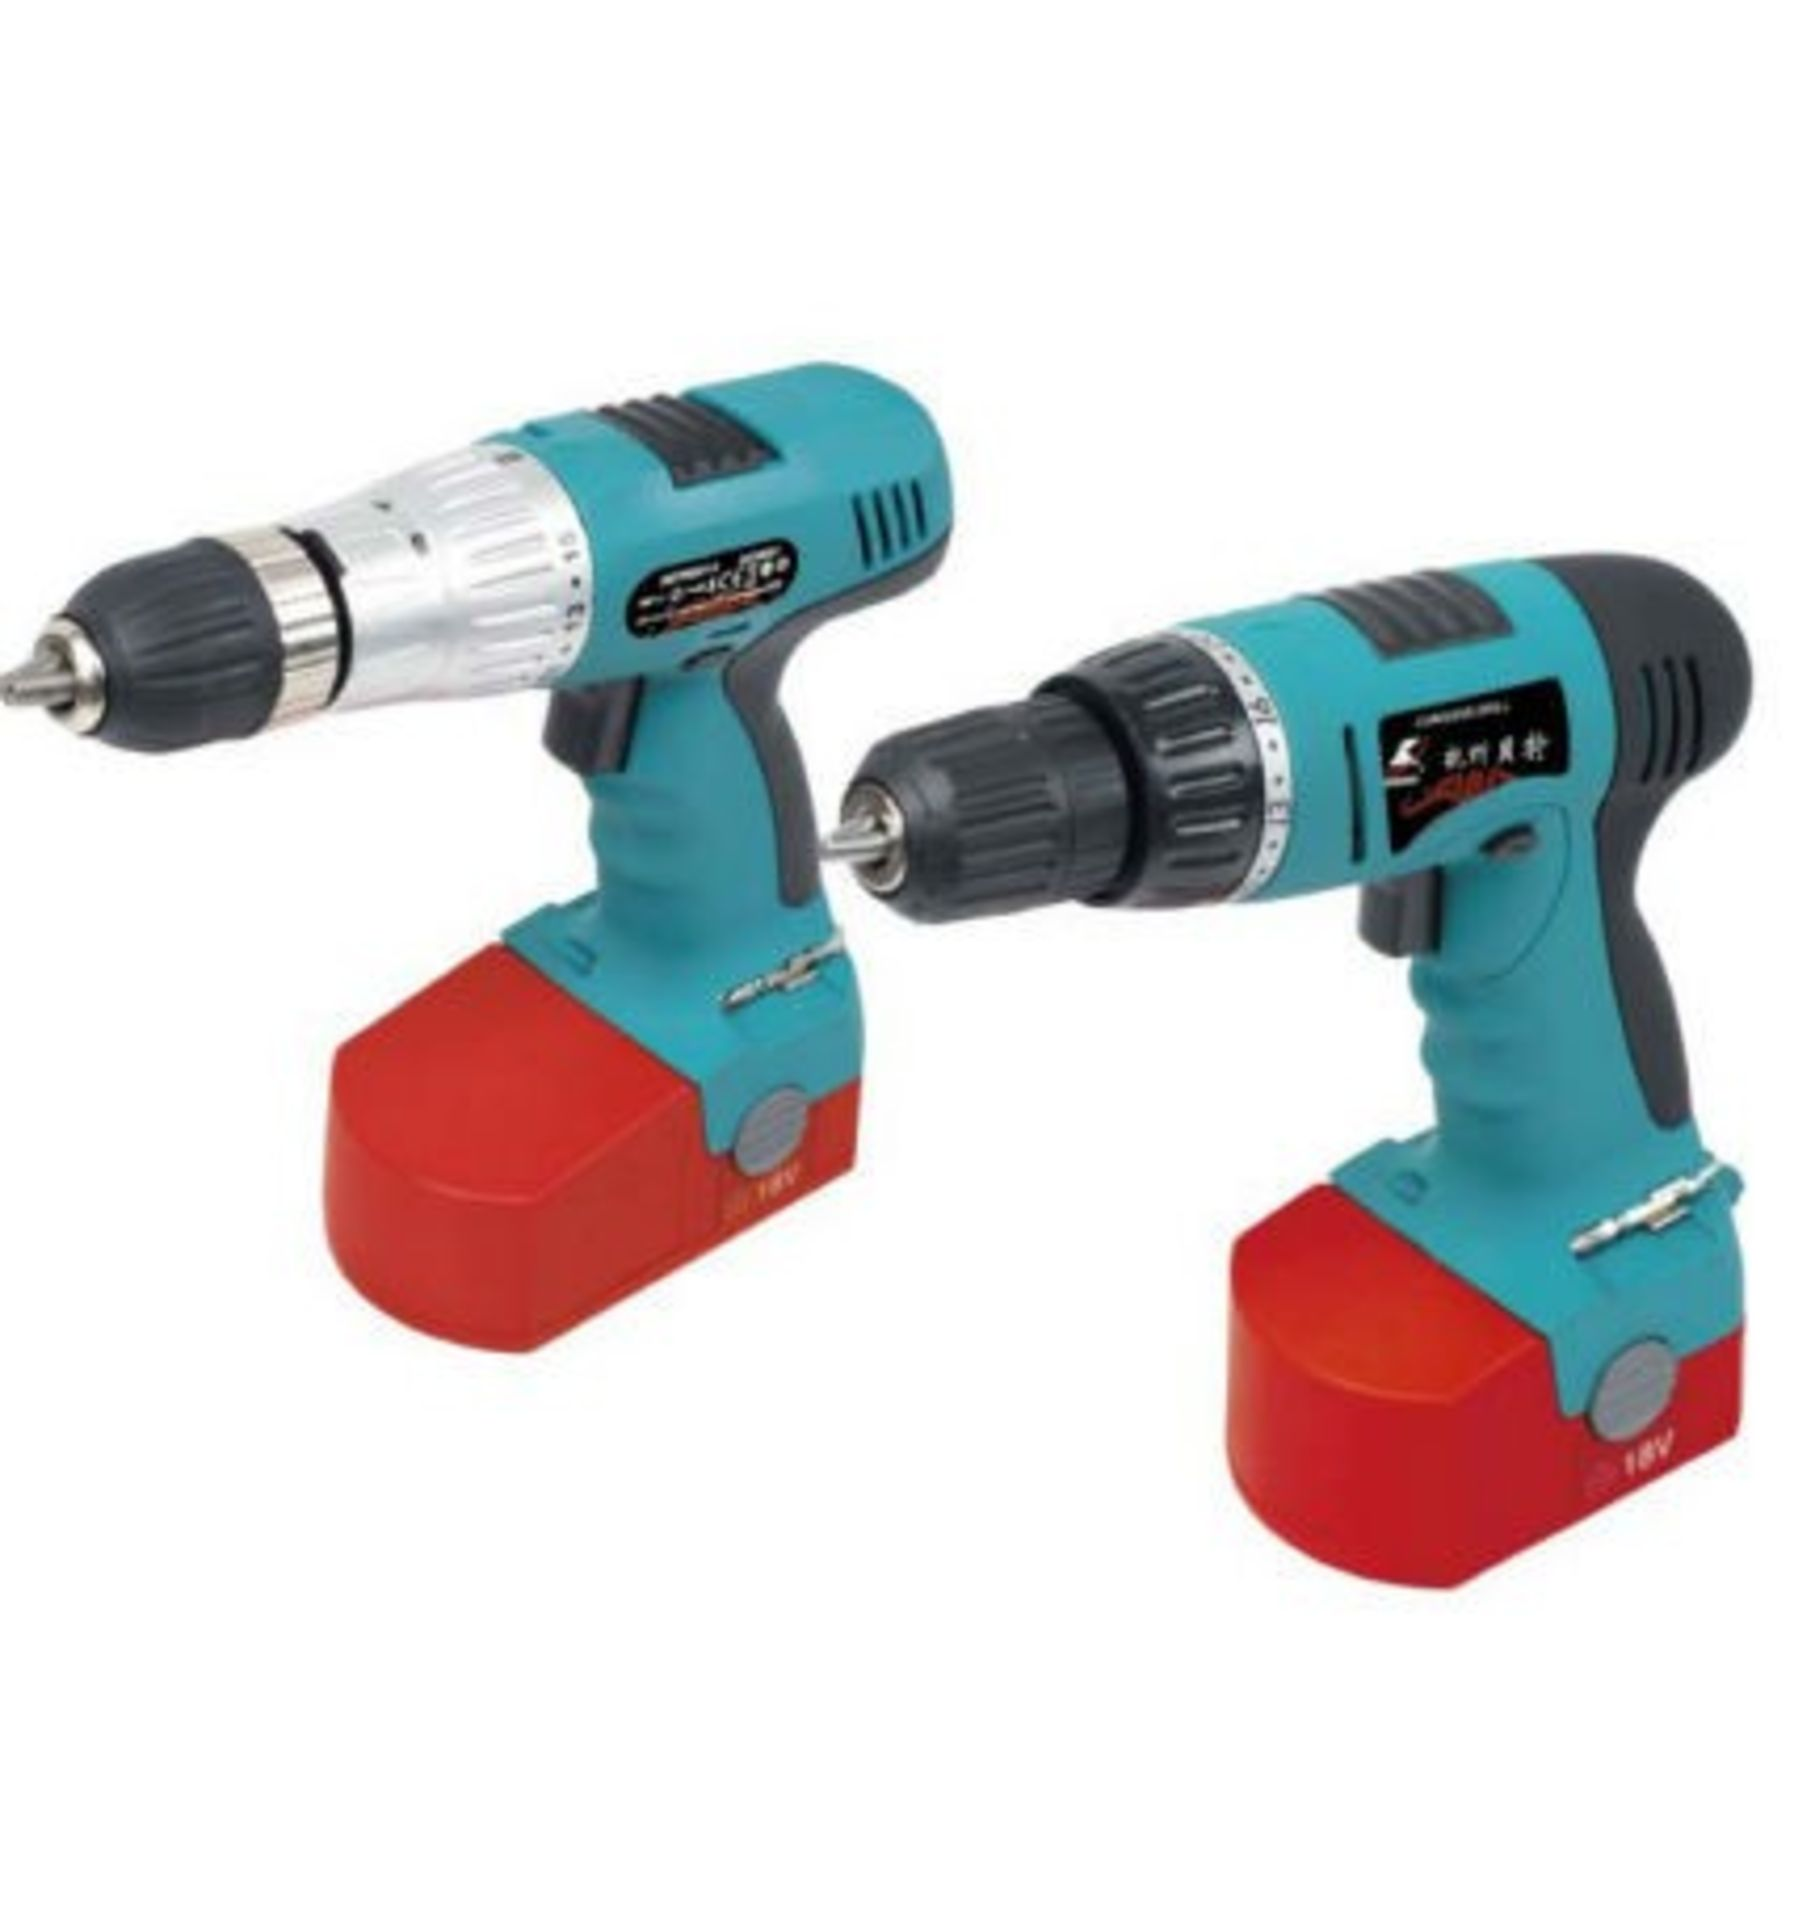 Lot 10063 - V Brand New 18V Twin Drill Kit with Hammer Action and Torque Adjustment - with 15 Asssorted Drill